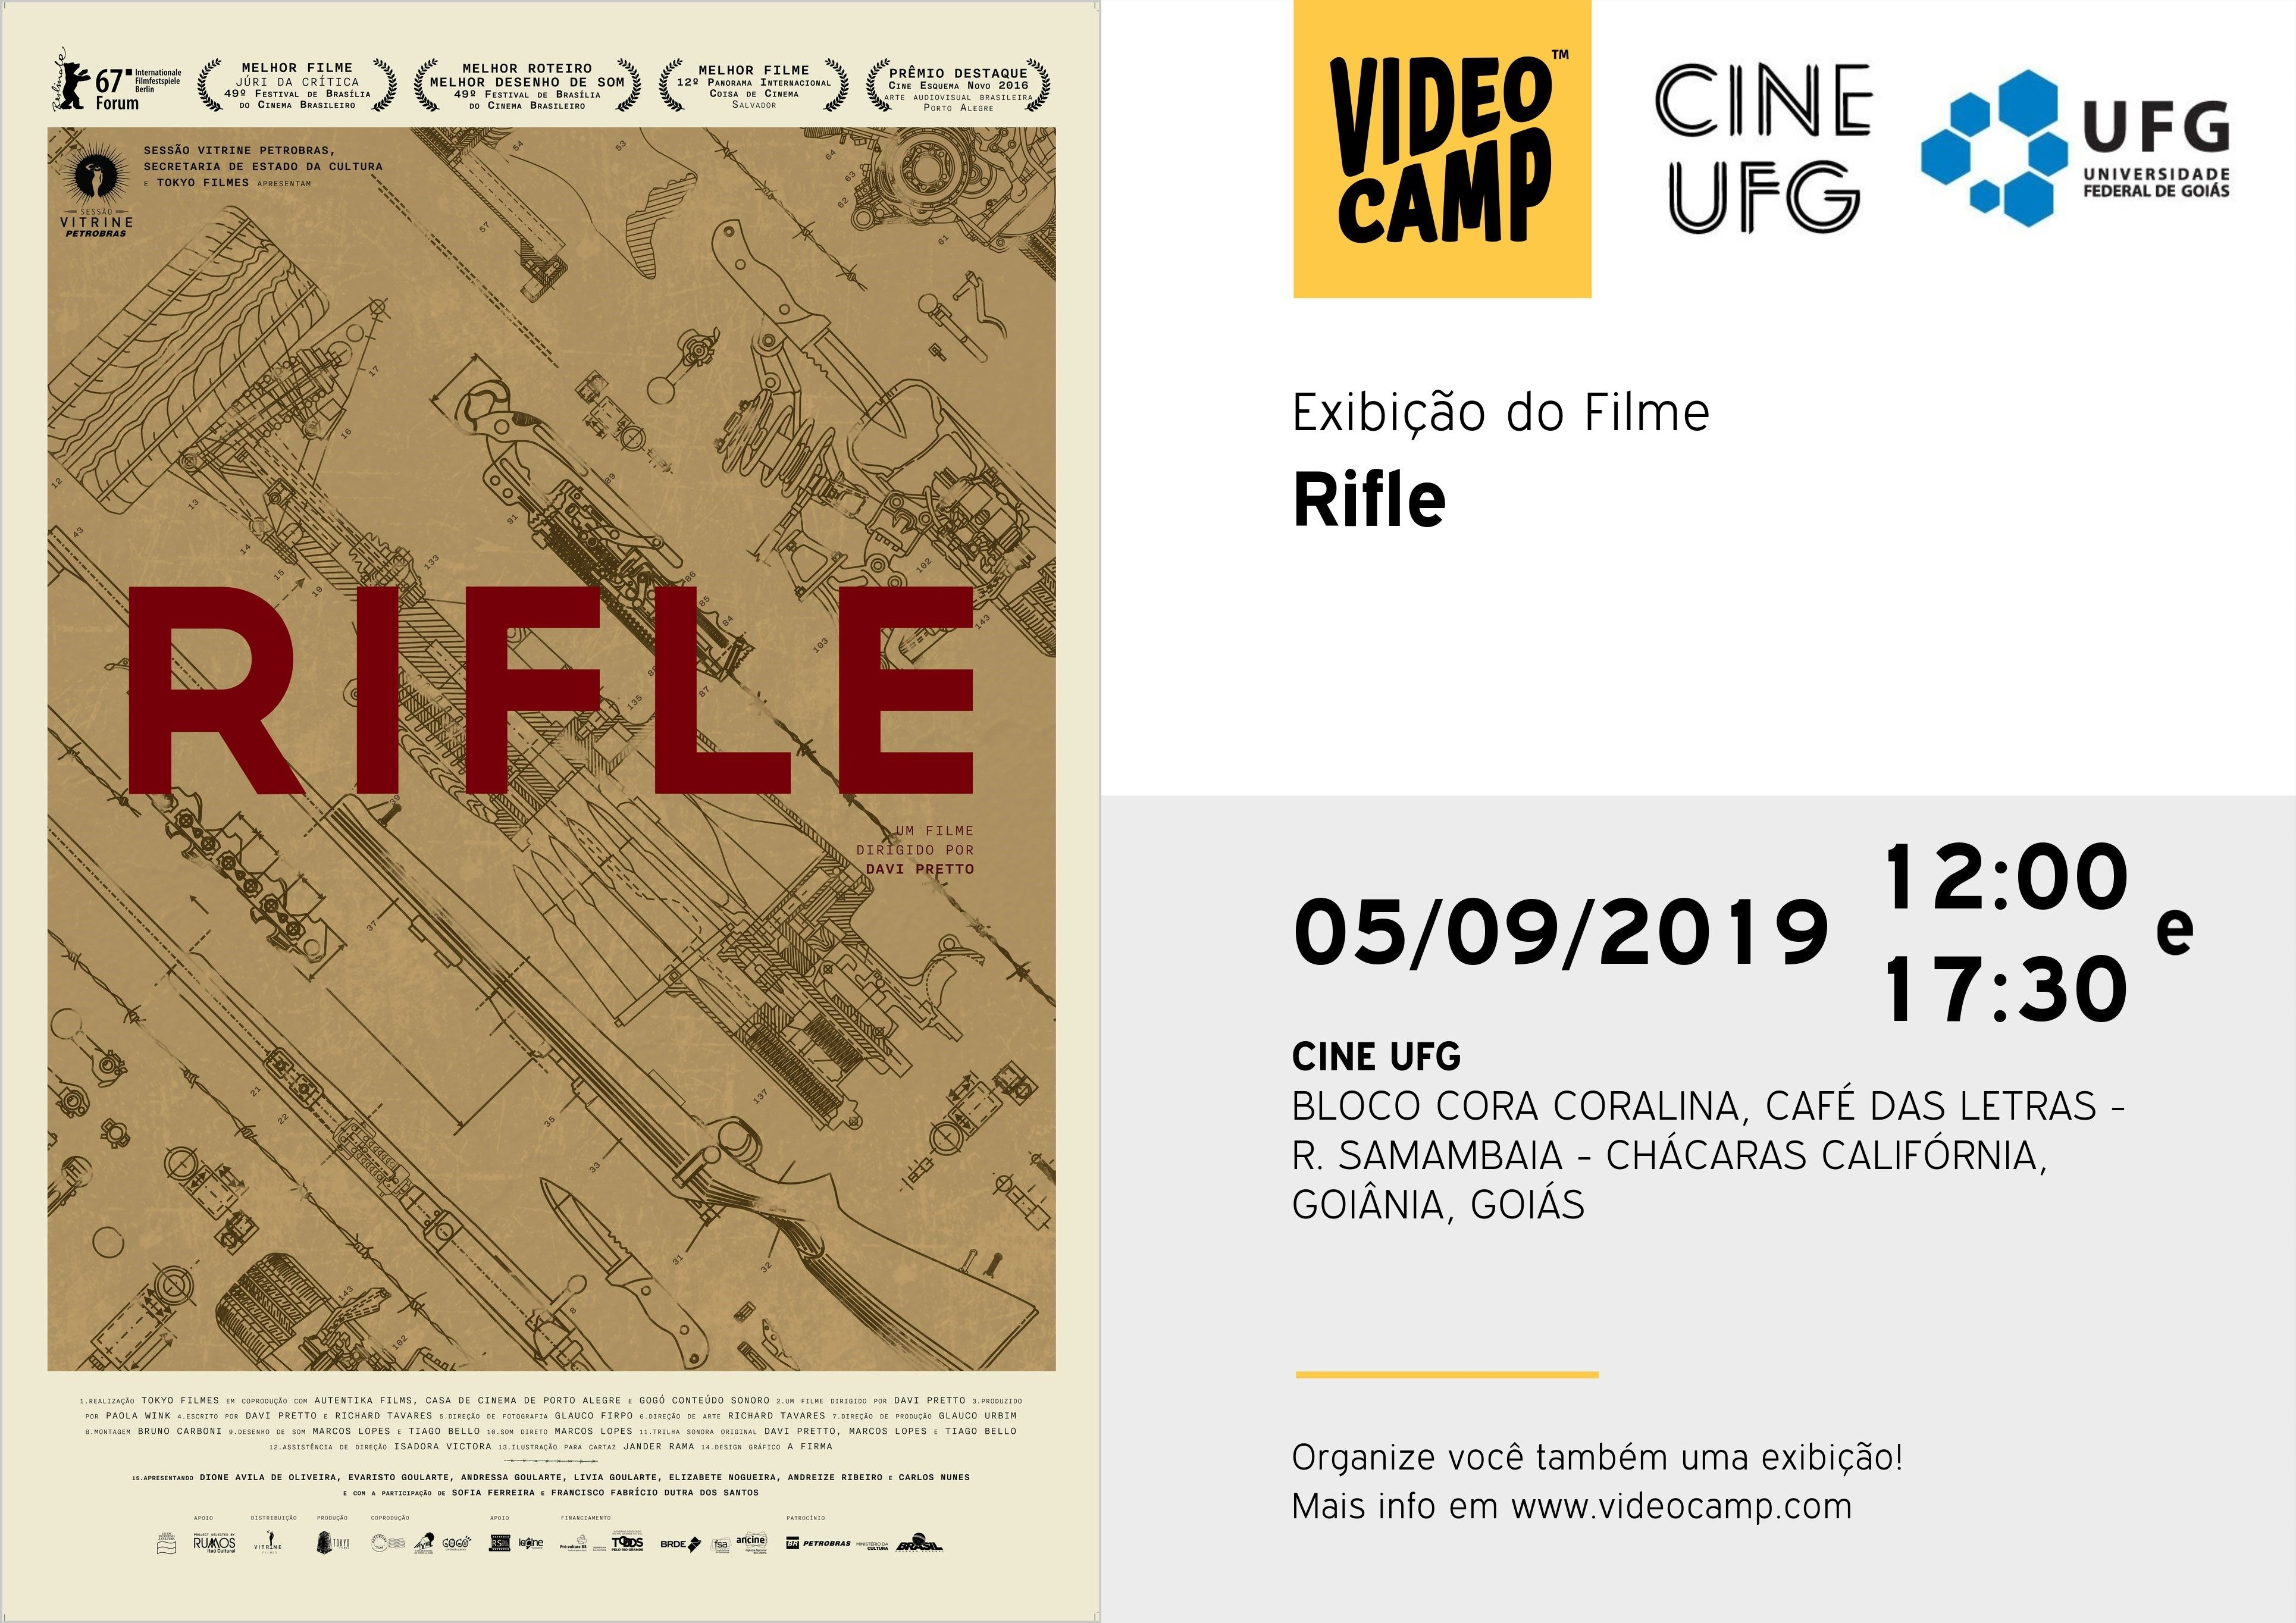 RIFLE (CINE UFG)